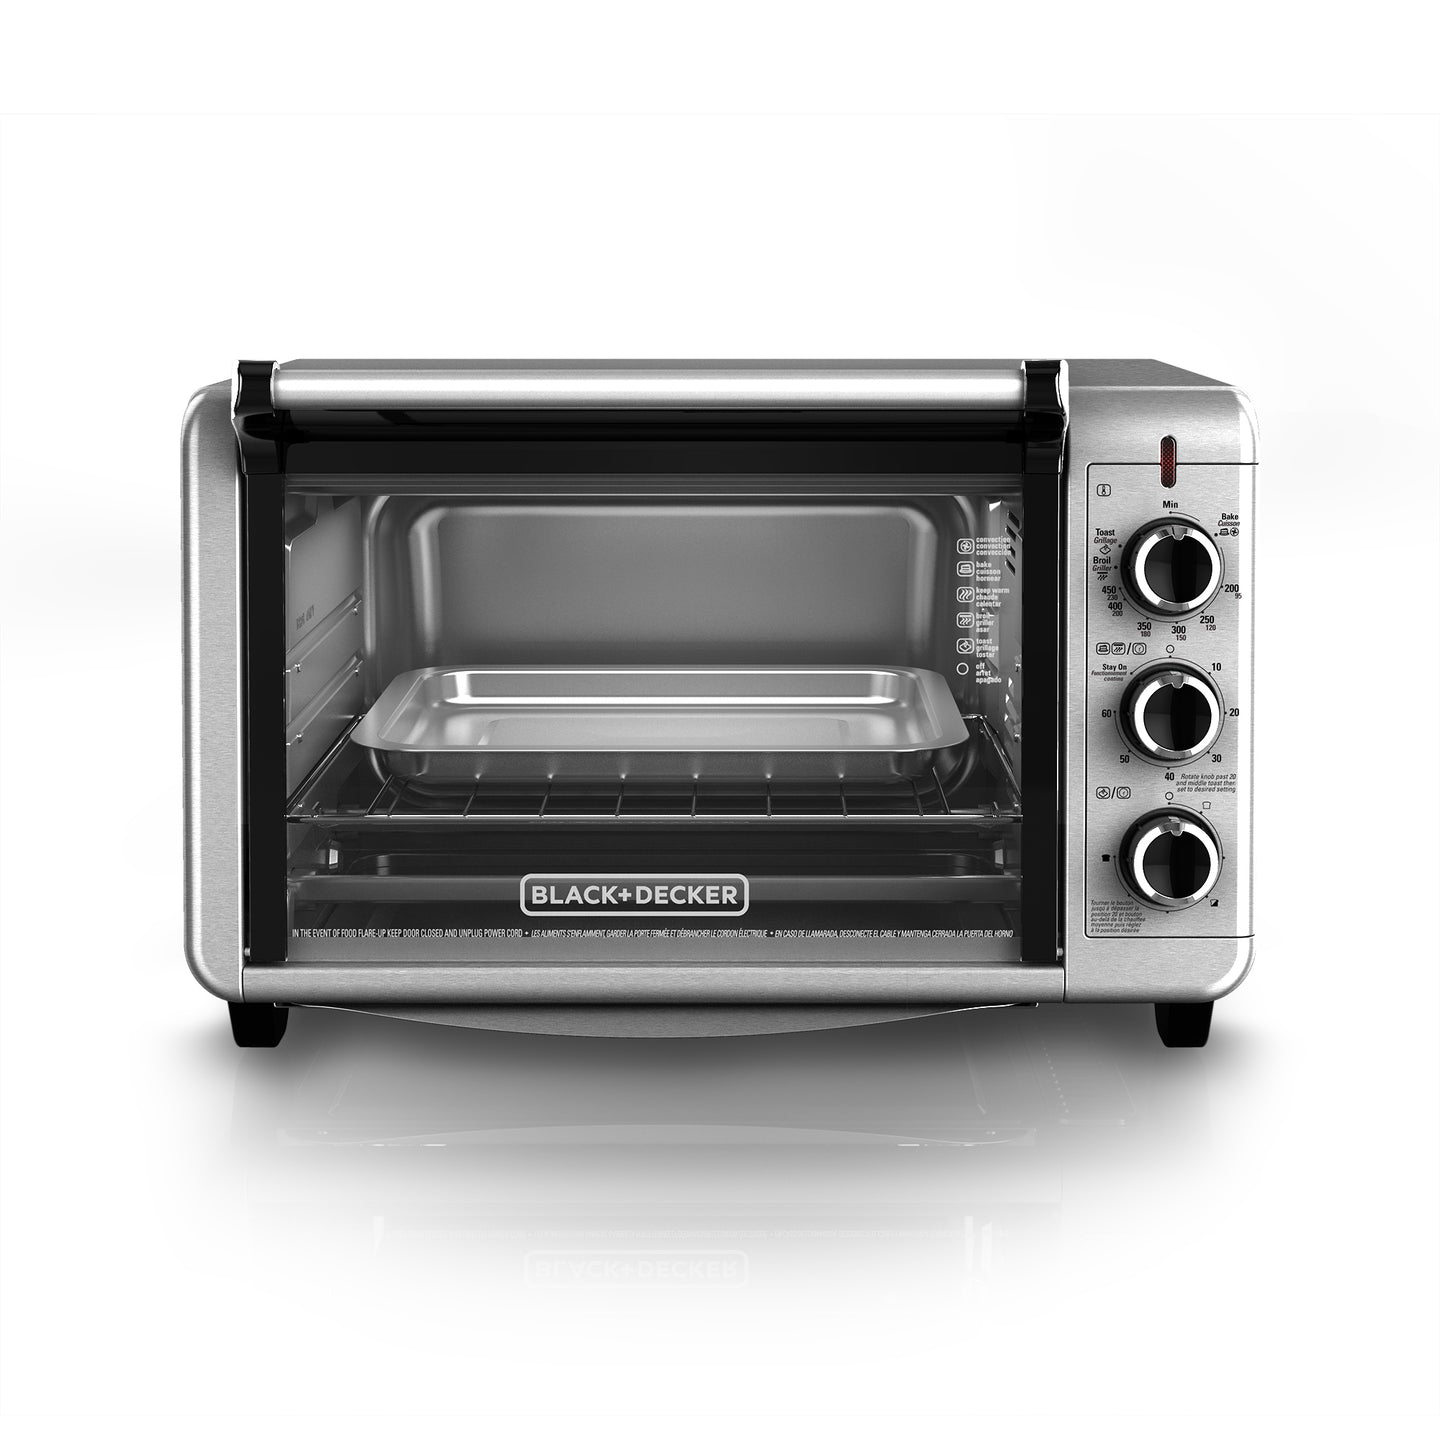 Black & Decker TO3210SSD Convection Toaster Oven 6-Slice - Silver